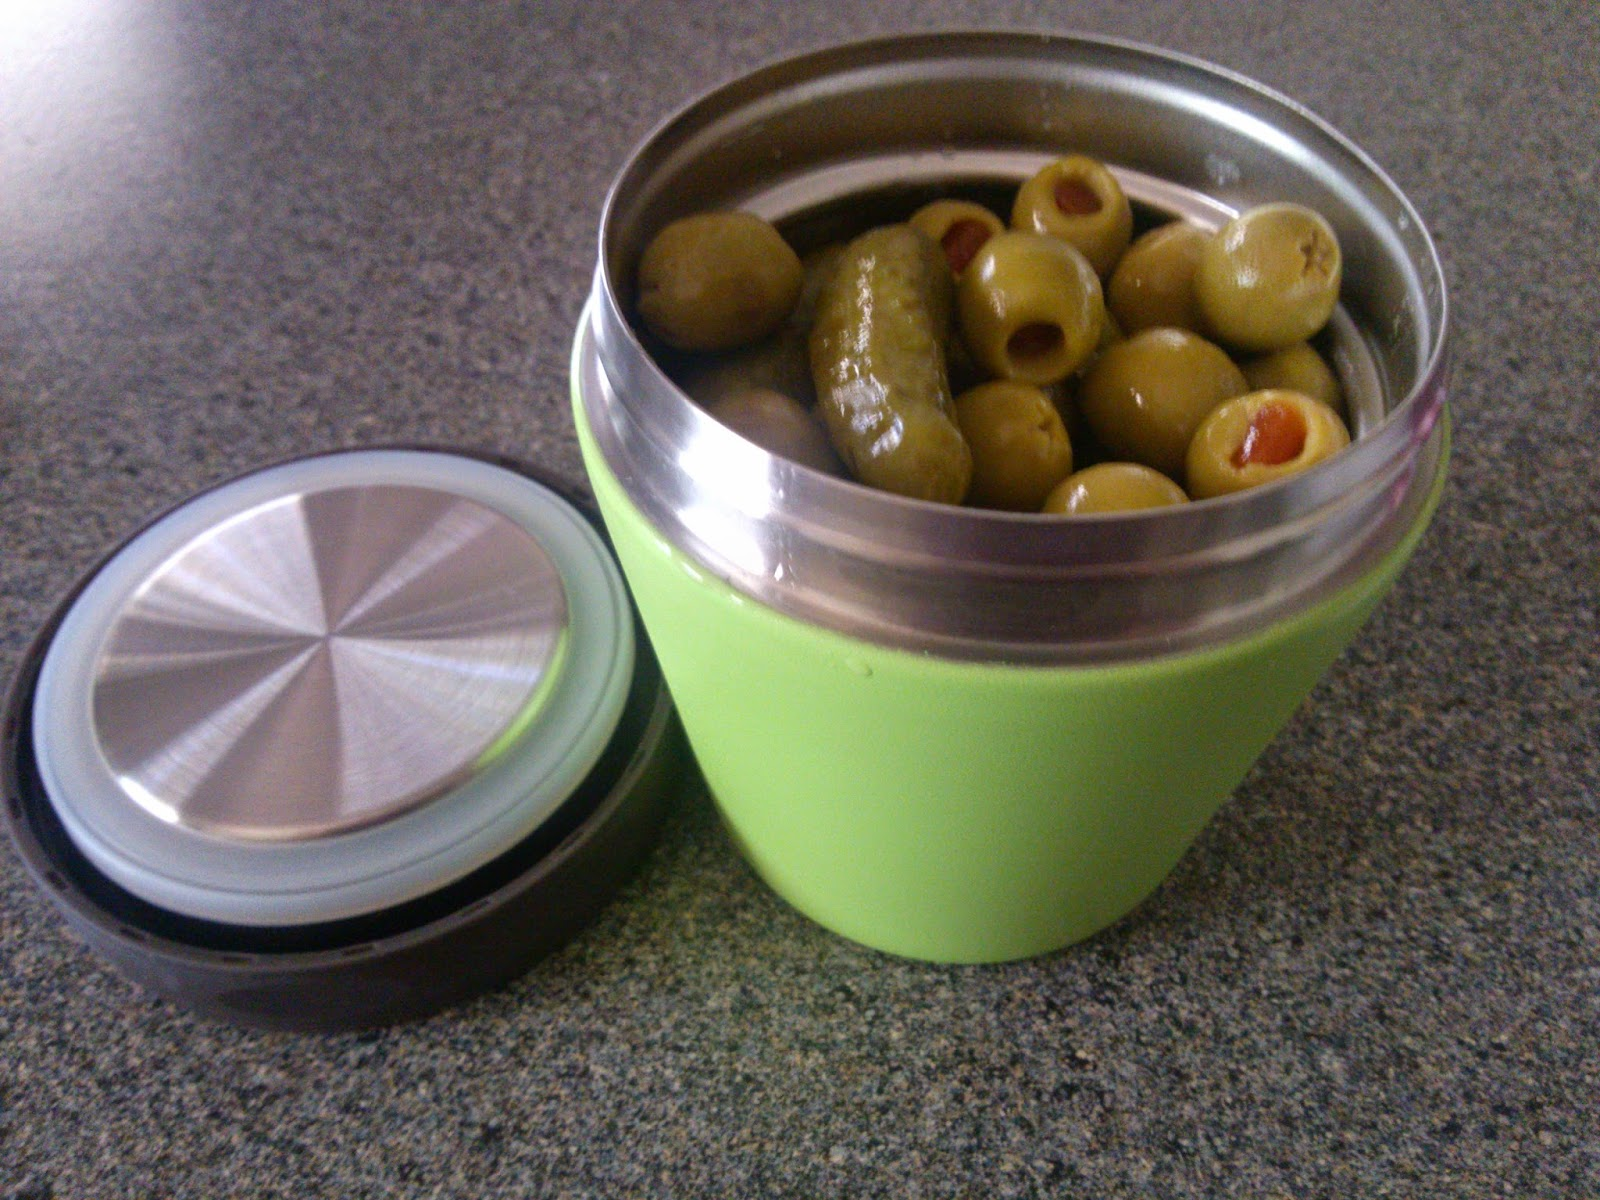 MIRA Stainless Steel Insulated Food Jar Review